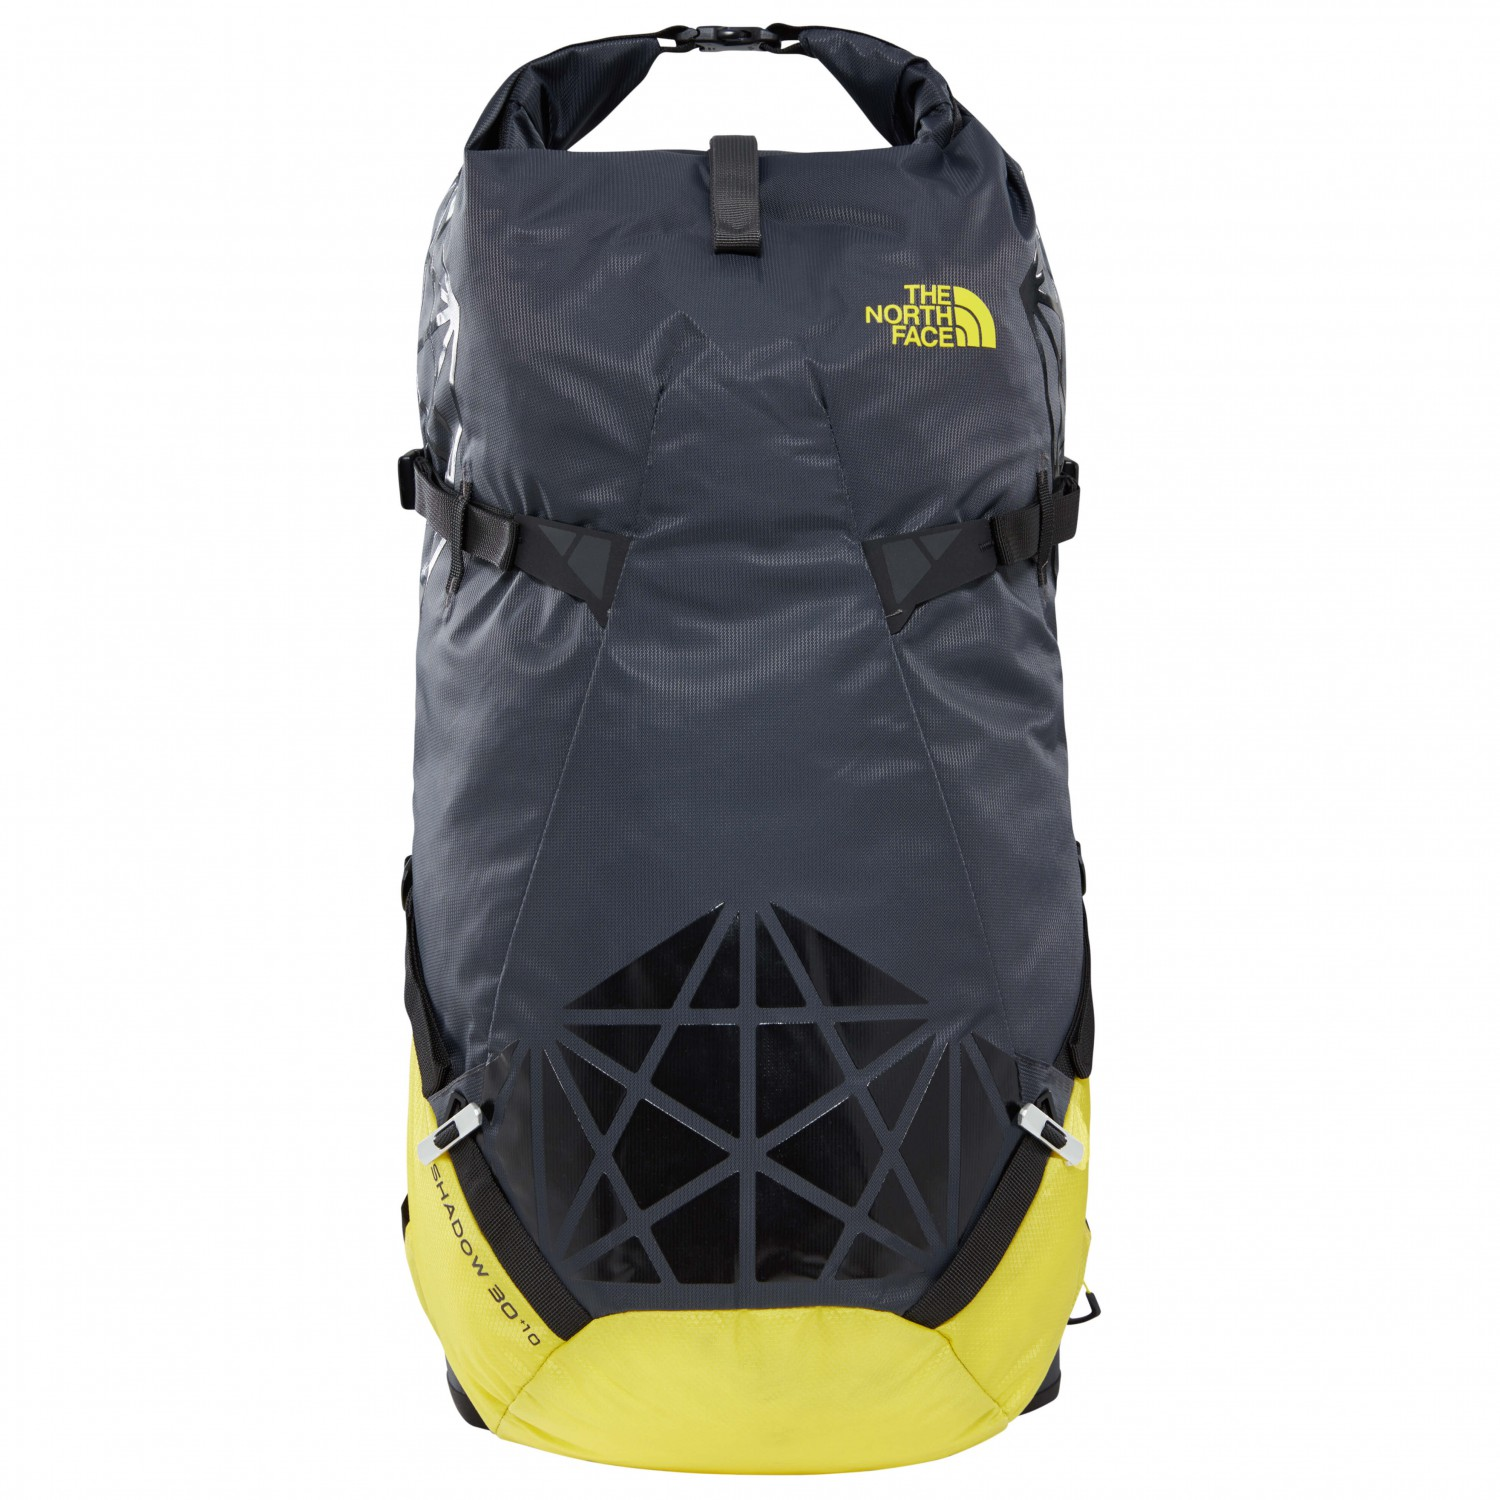 6f4410b598 The North Face Sac à dos Outdoor Blaze 7MGmOoWA - nay.imag-in-photo.fr